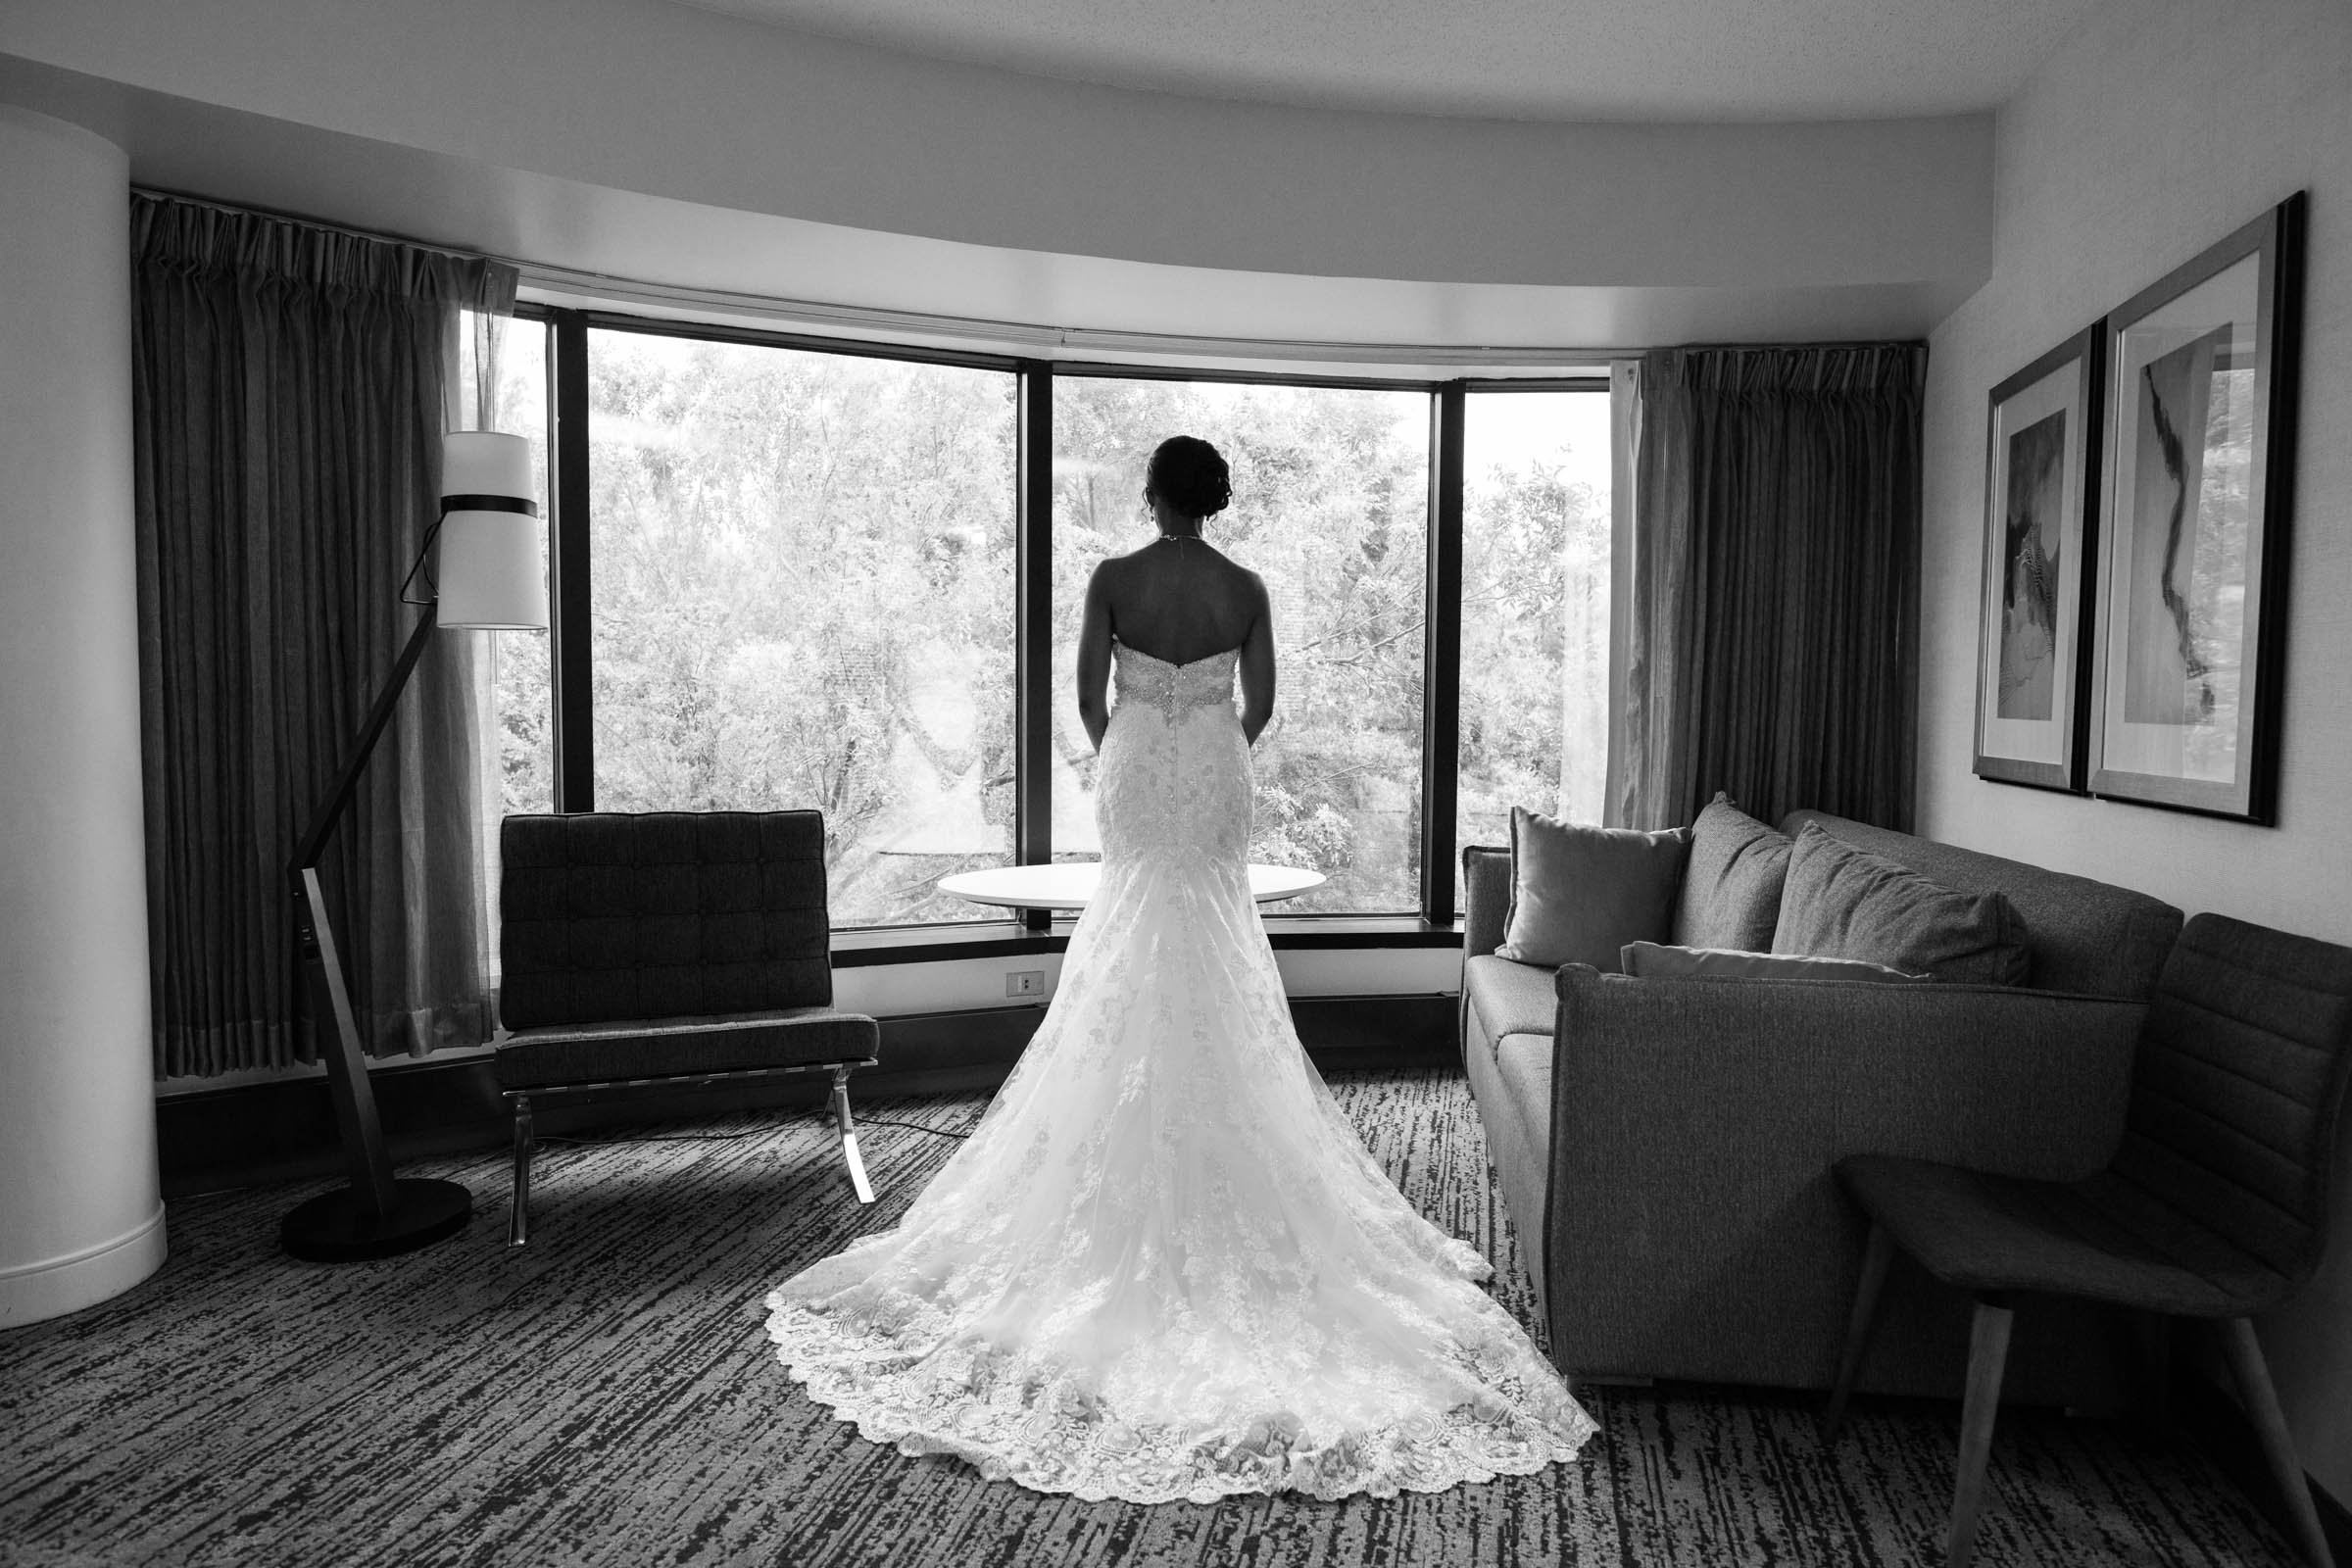 Black Bride Dream Wedding at  Hyatt Regency Fairfax Virginia Husband and Wife Wedding Photographers Megapixels Media Photography (18 of 104).jpg